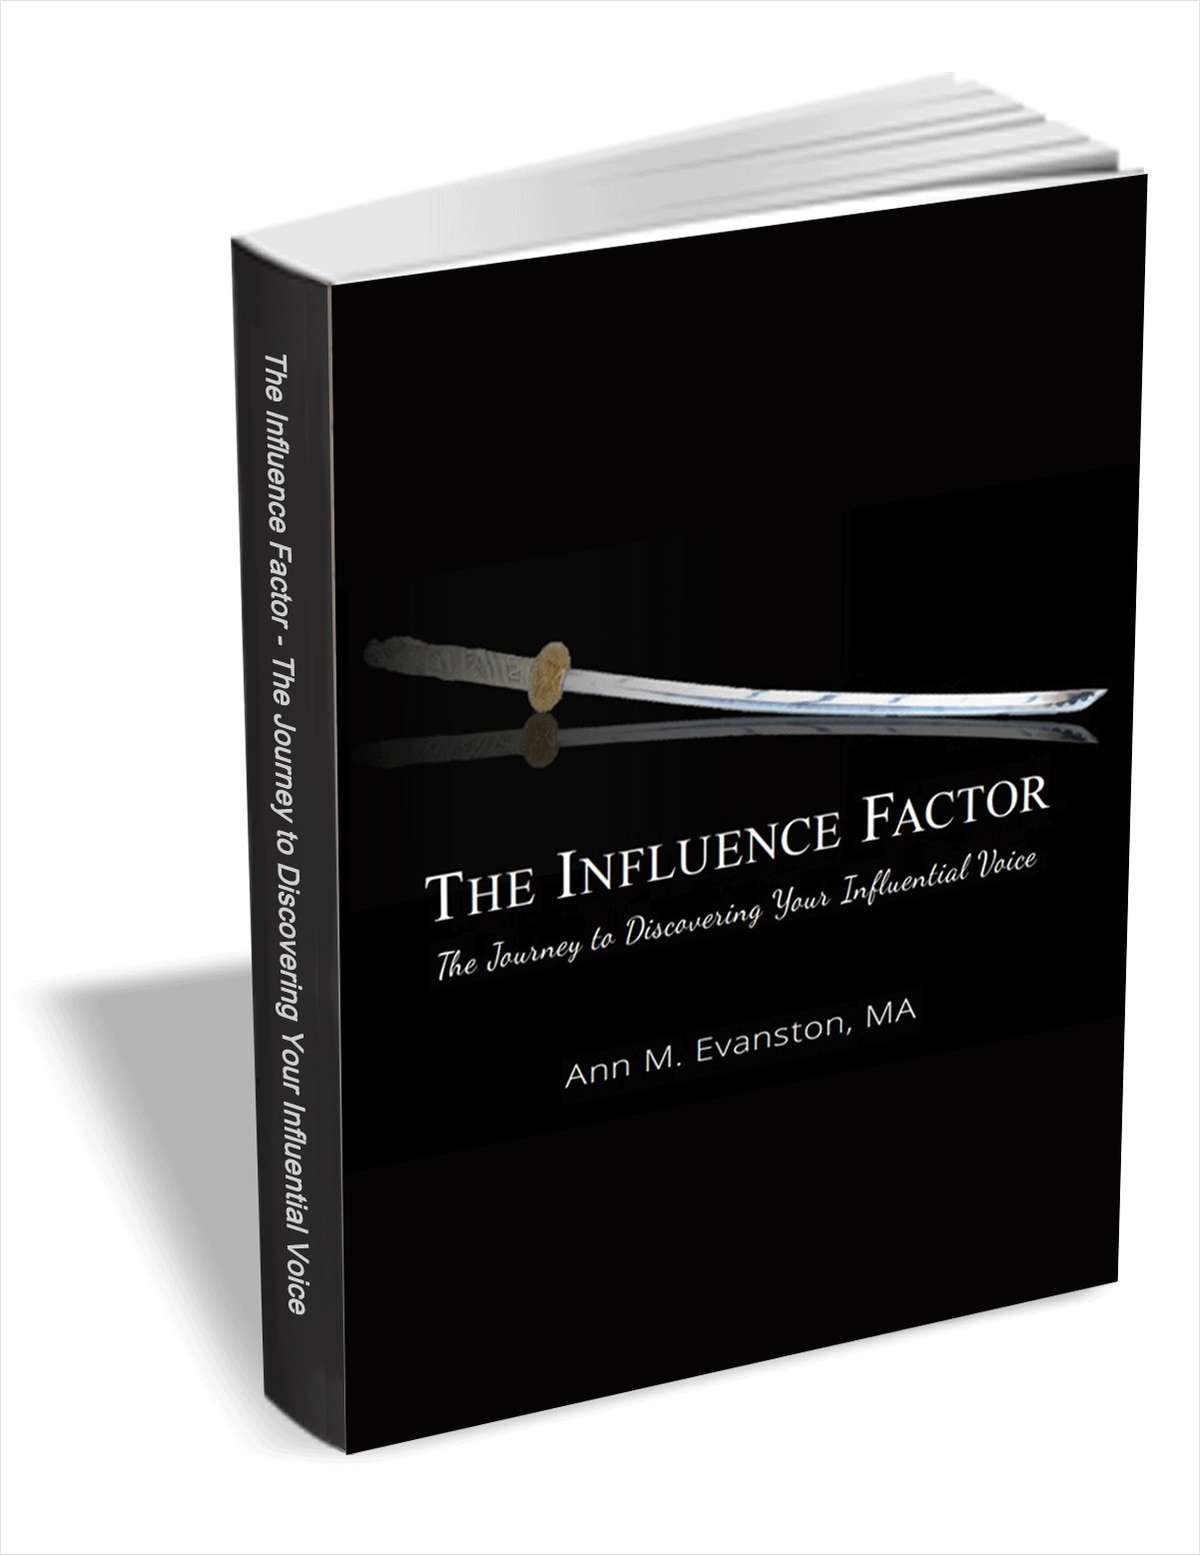 The Influence Factor - The Journey to Discovering Your Influential Voice